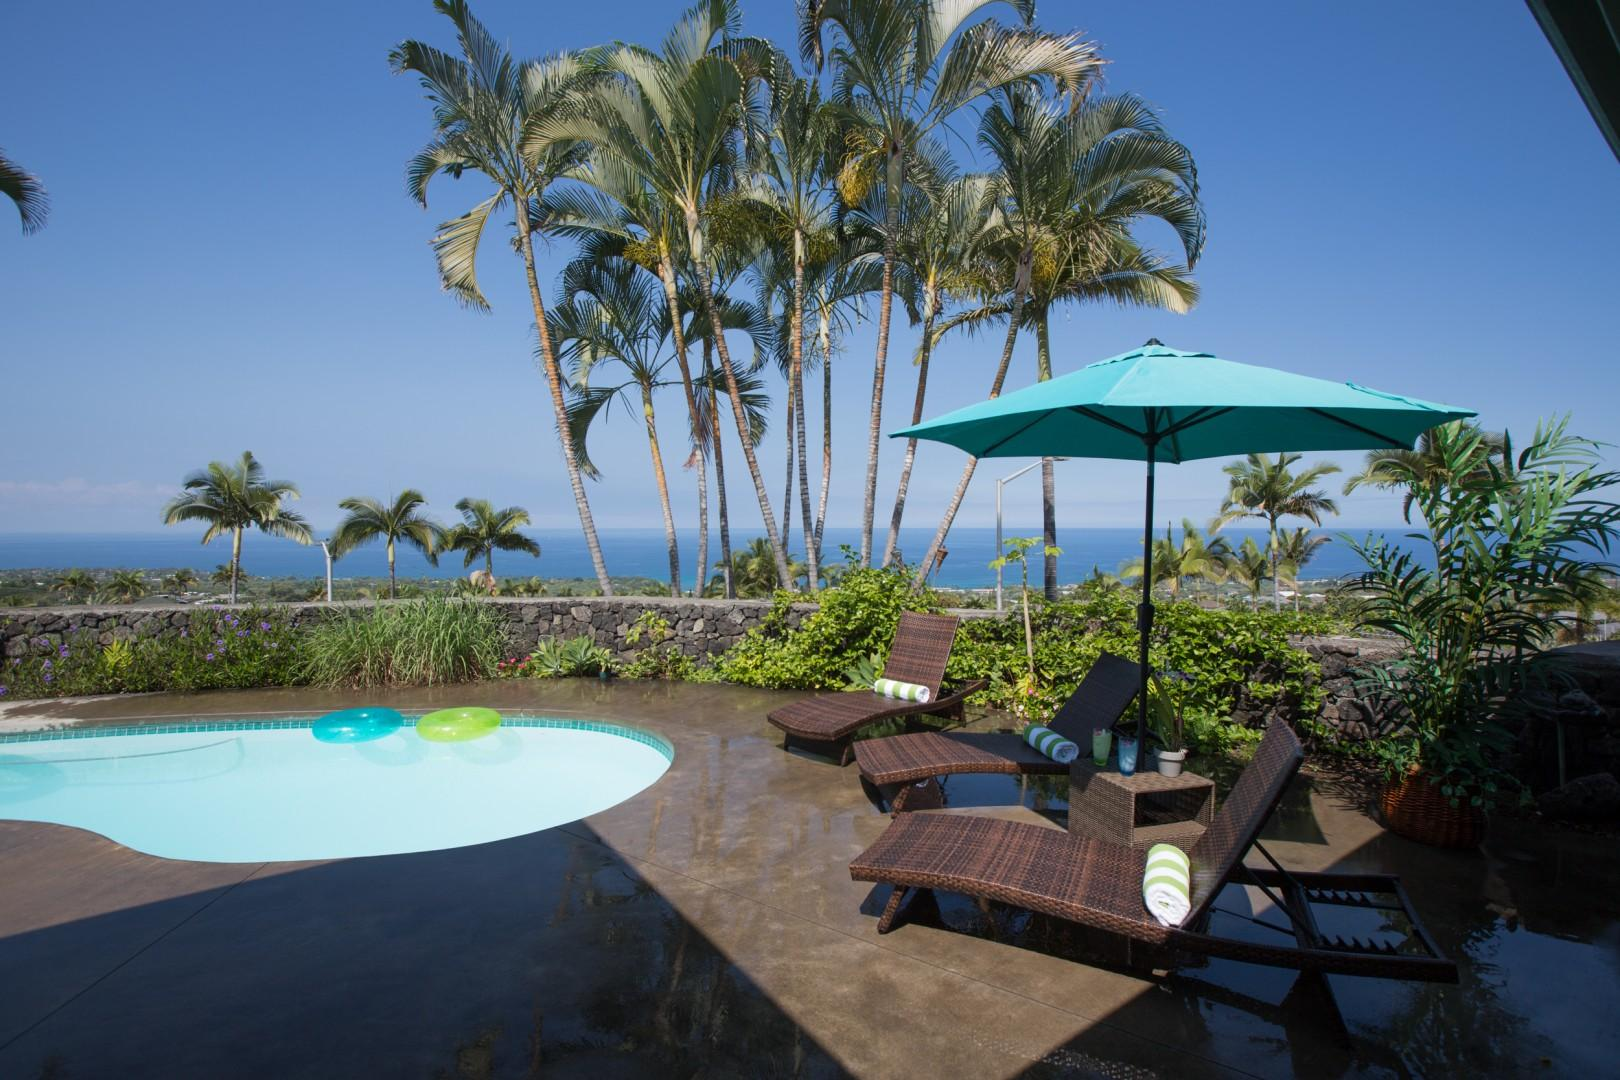 The perfect lanai to sit back and relax ....